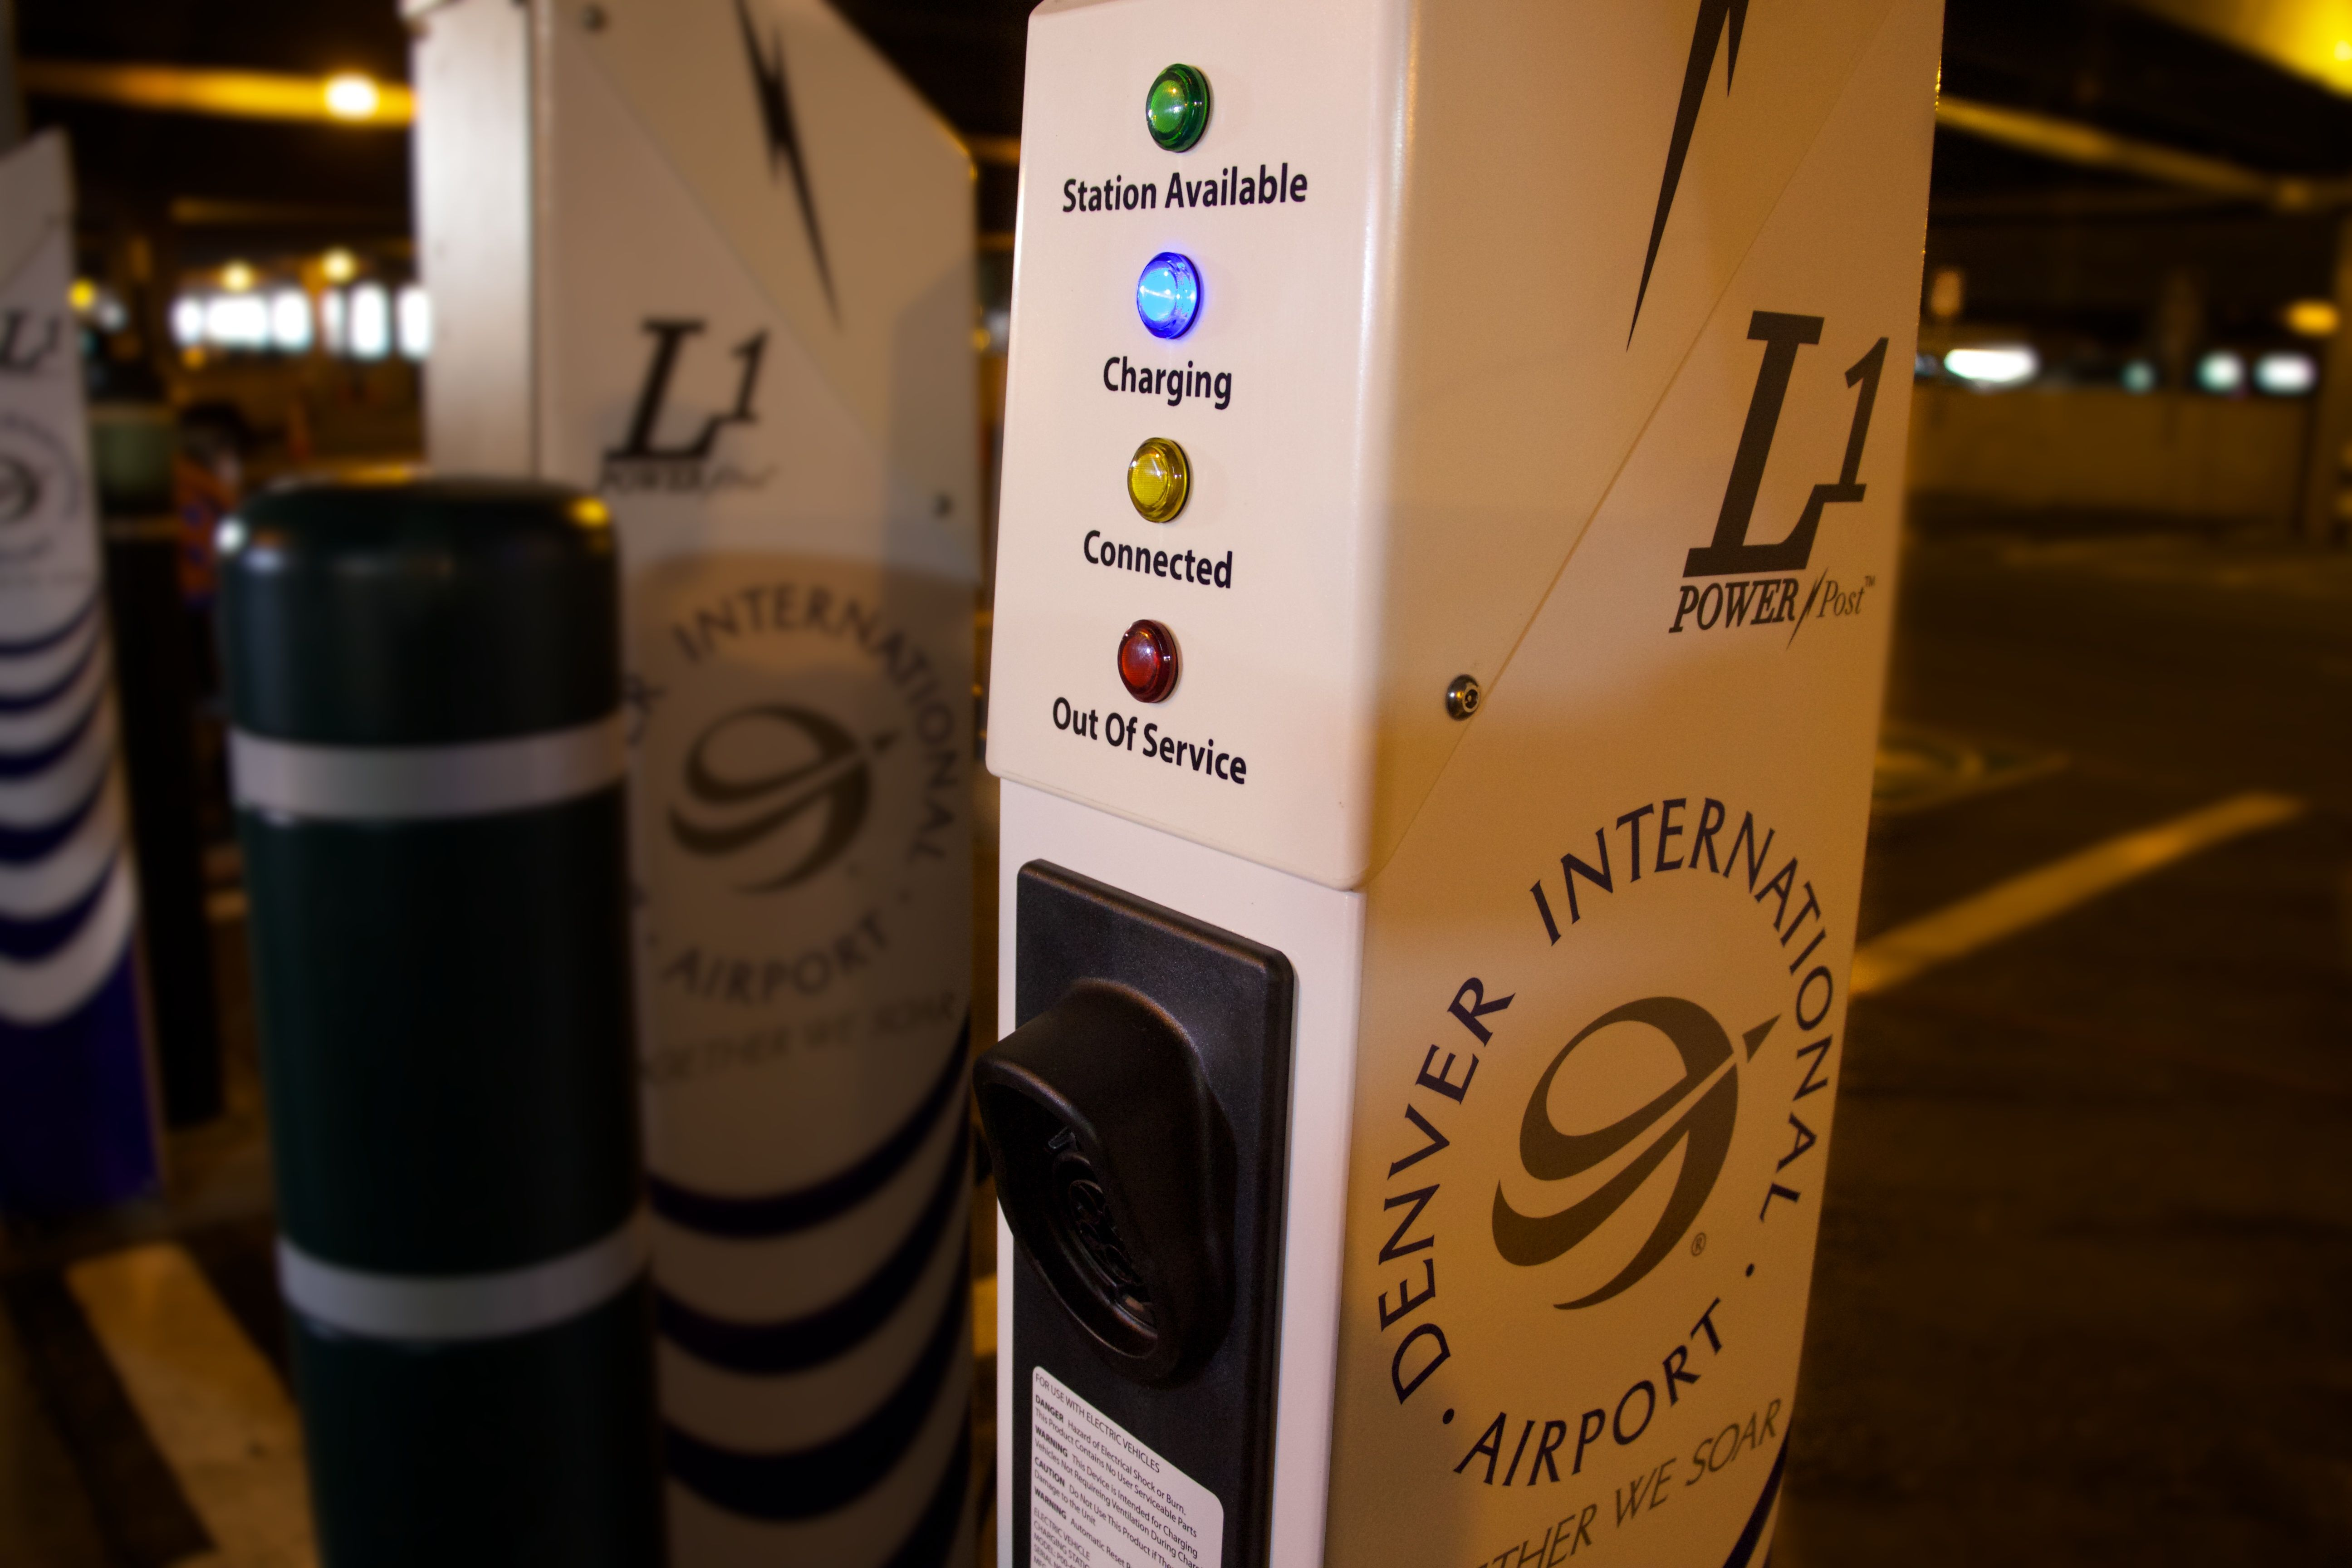 DIA now has 10 electric vehicle charging stations